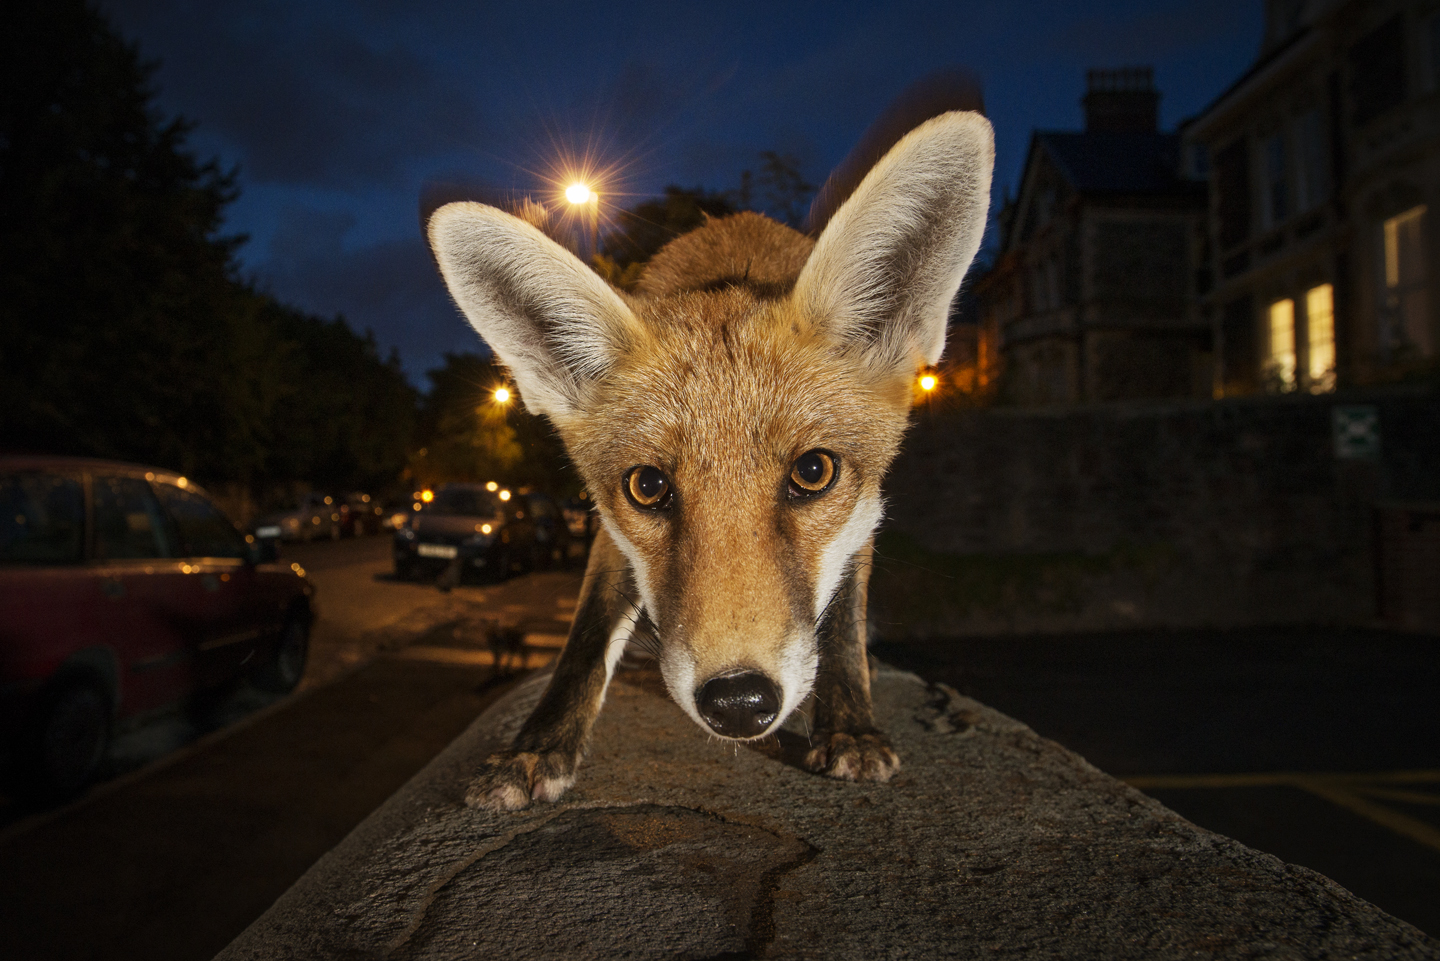 But even though we share our surroundings, after midnight the streets belong to the foxes